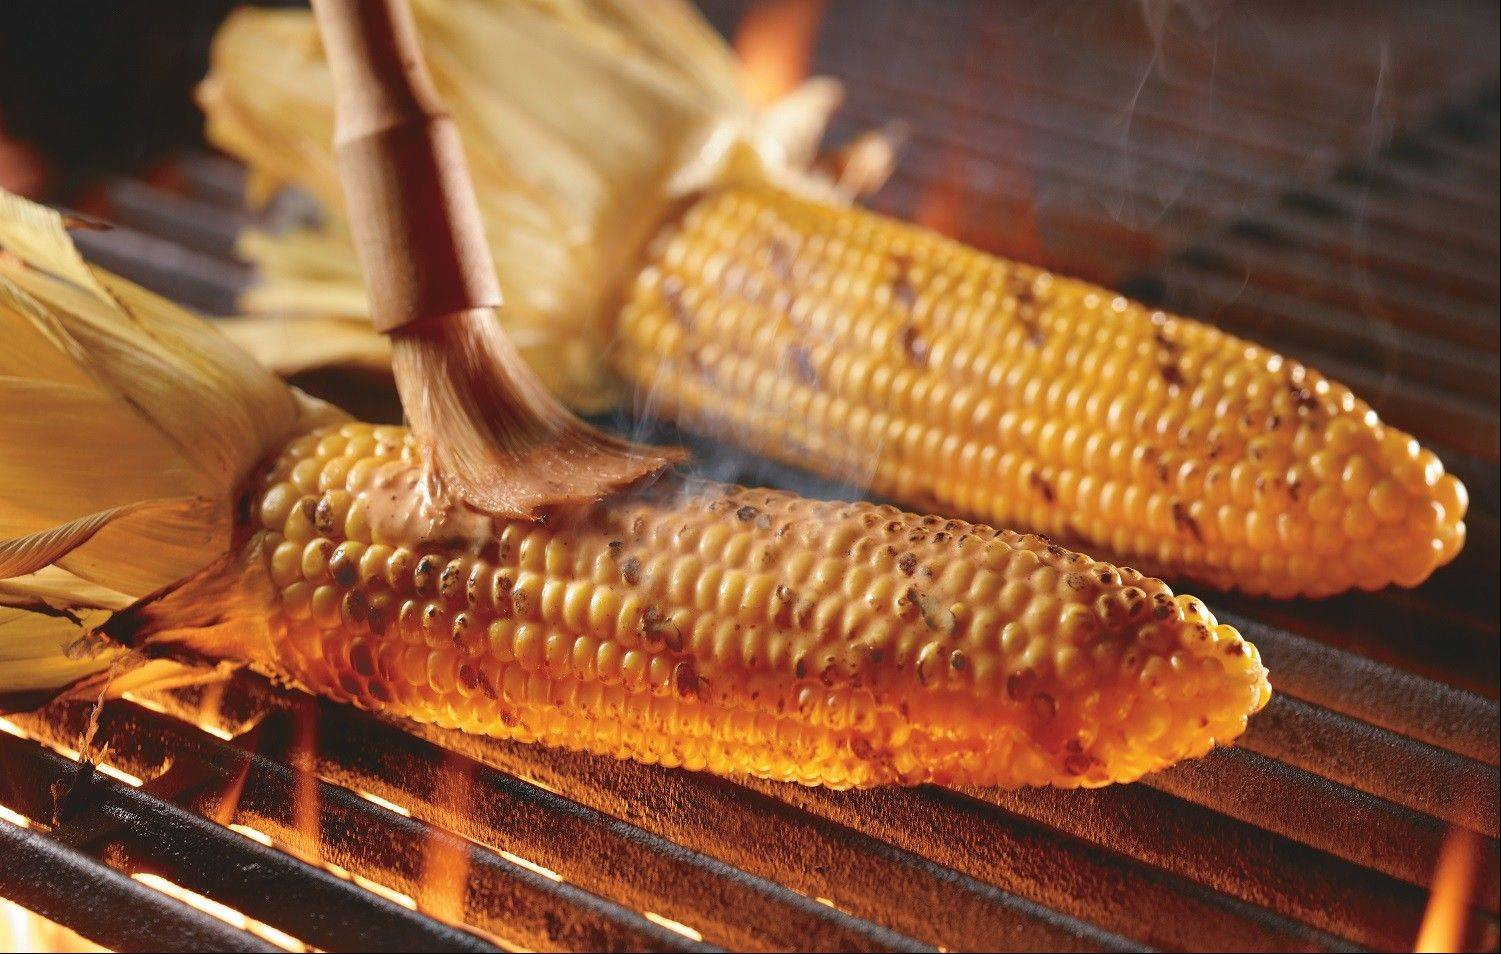 LongHorn's peak menu items include fire-roasted corn.